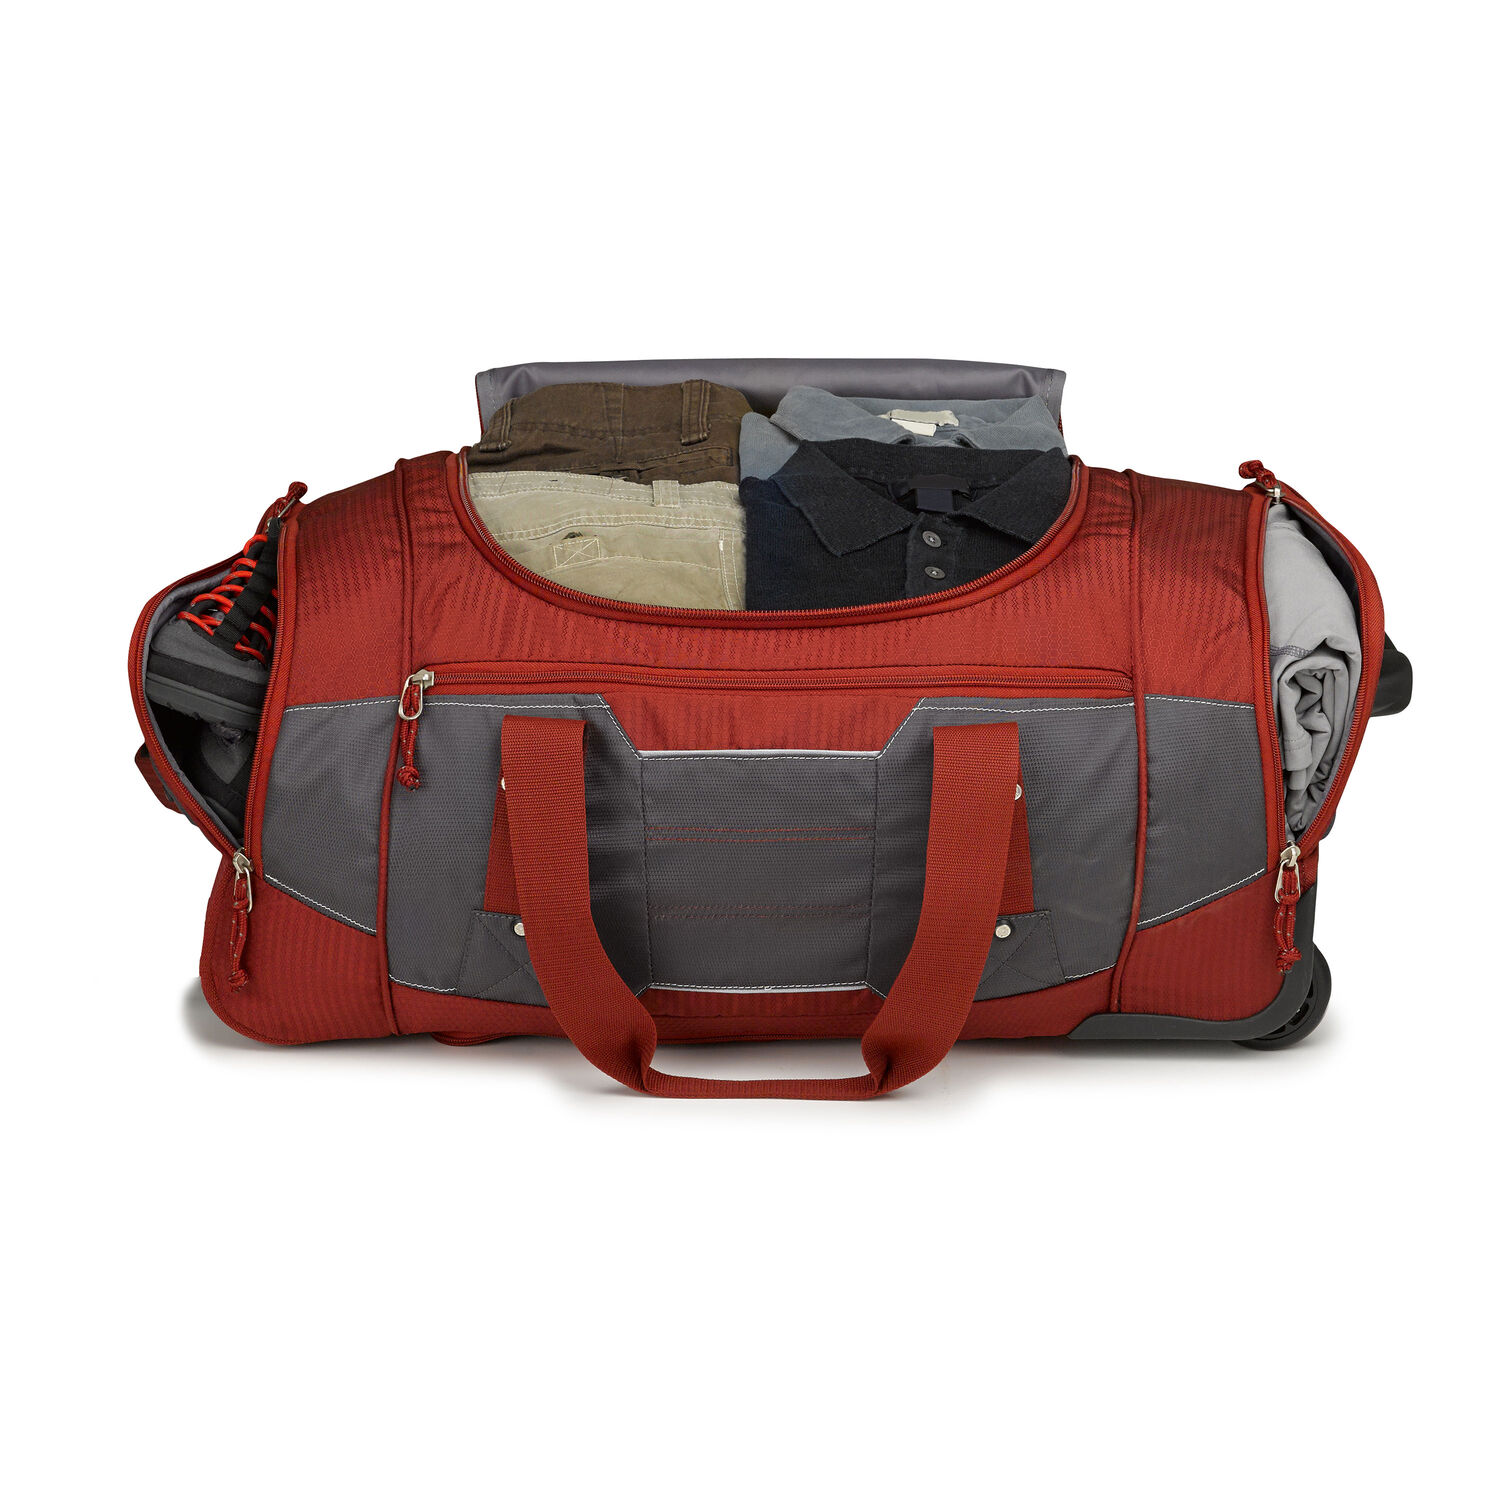 c64a720197 High Sierra Ultimate Access 2.0 26 quot  Wheeled Duffel in the color Brick  Red Mercury